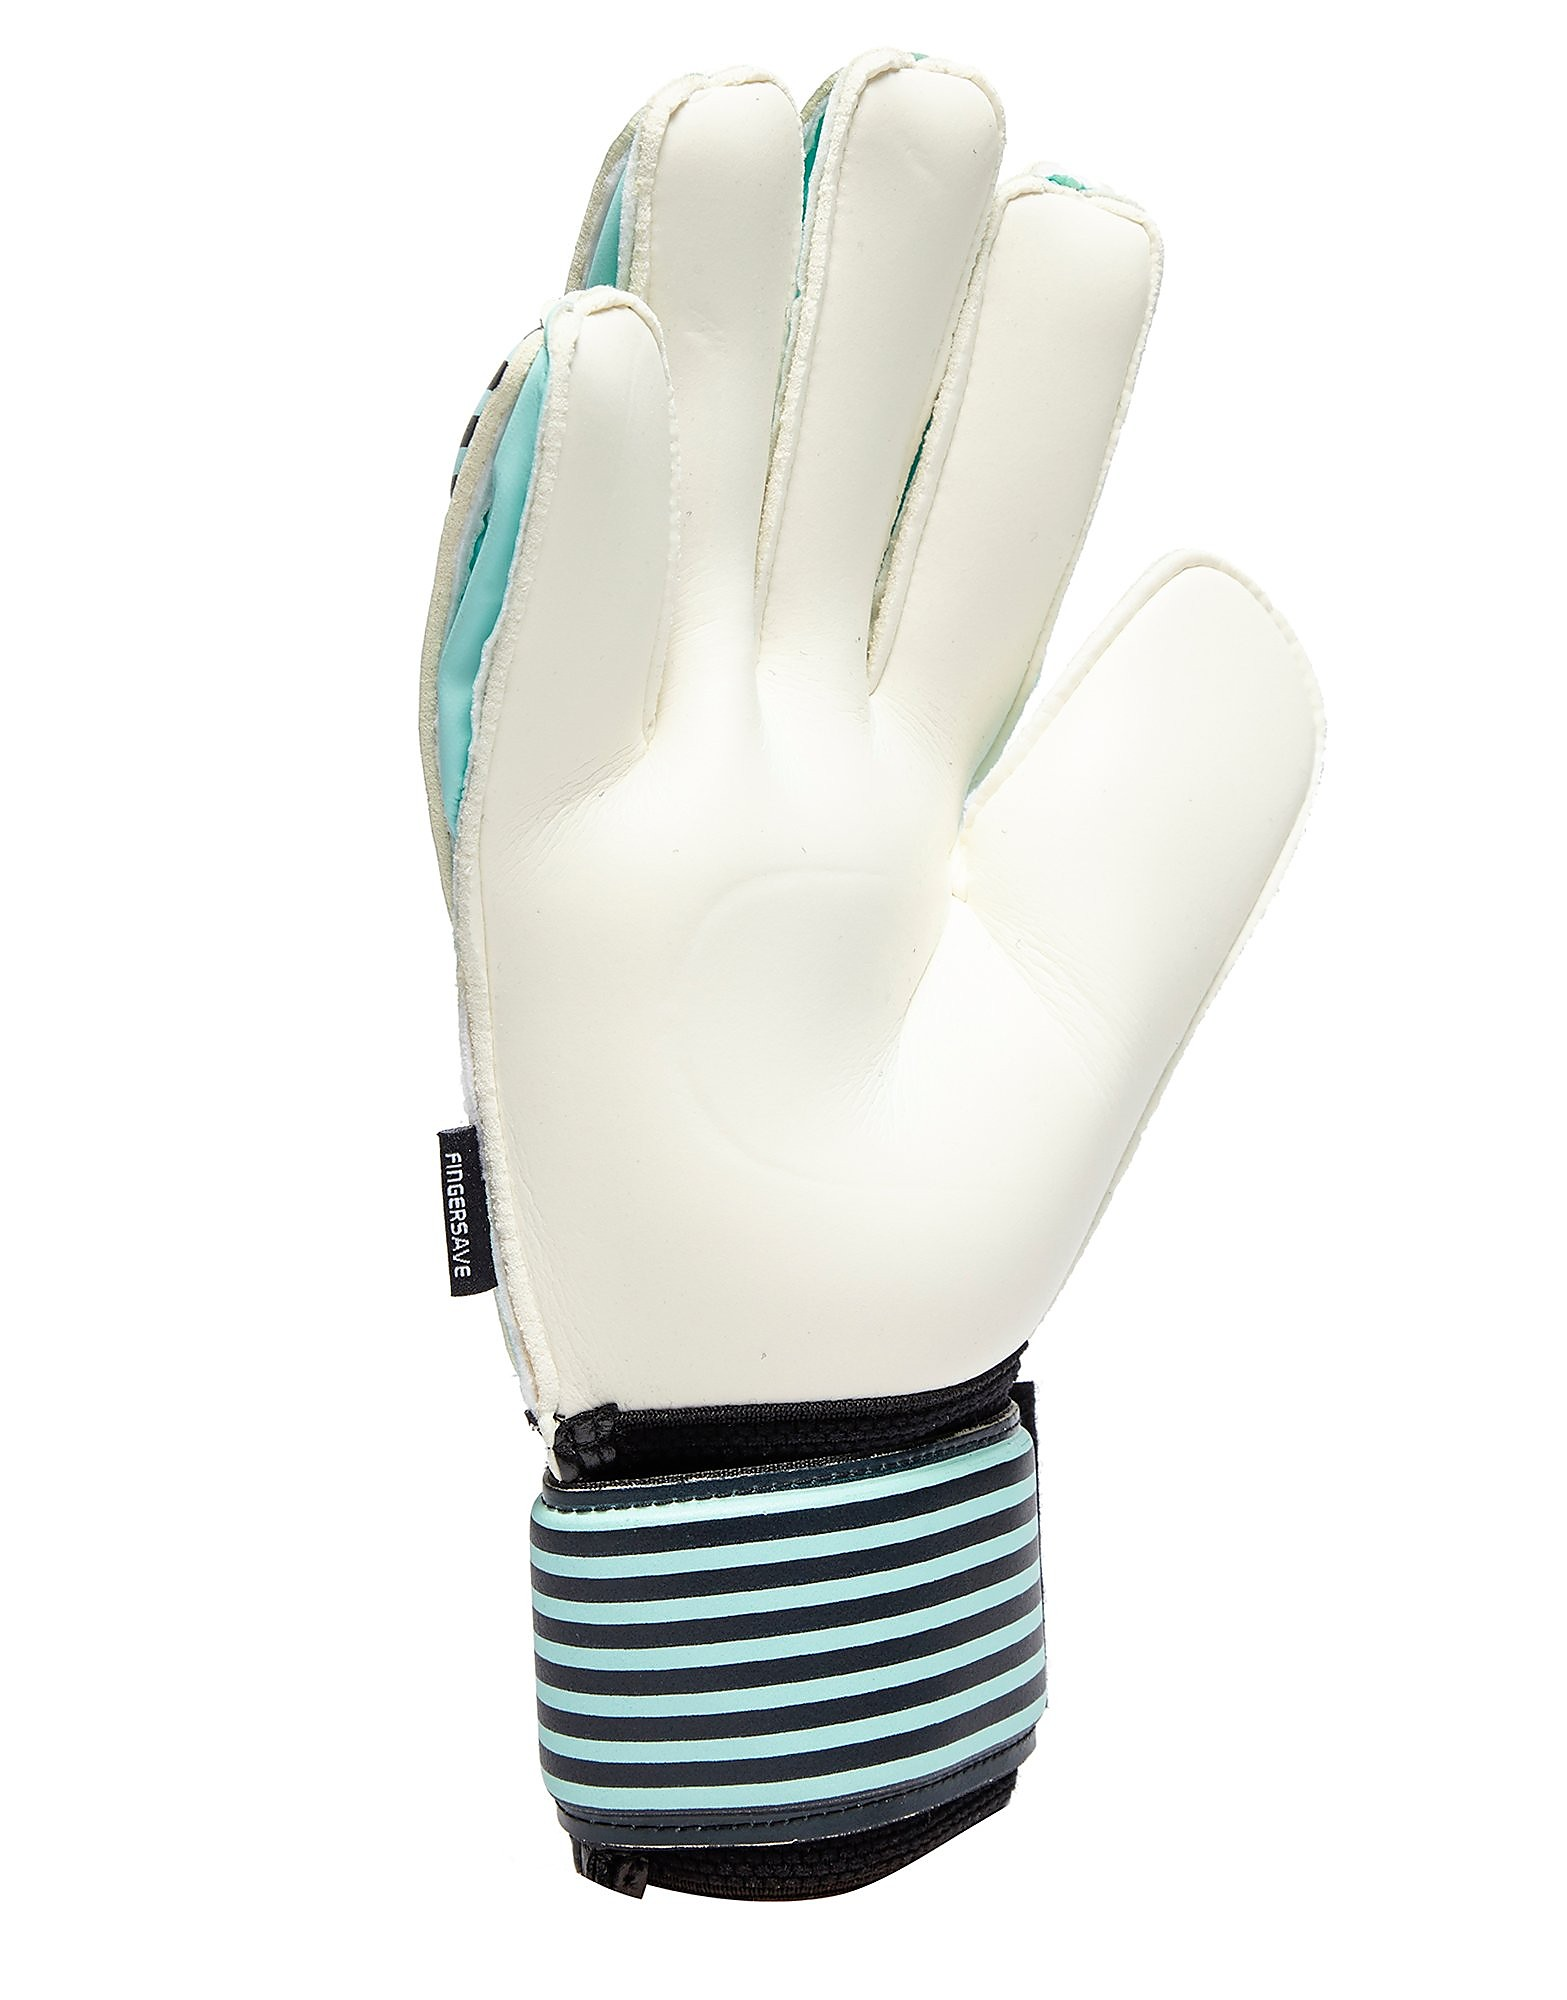 adidas Ace Fingersave Replique Guanti Calcio